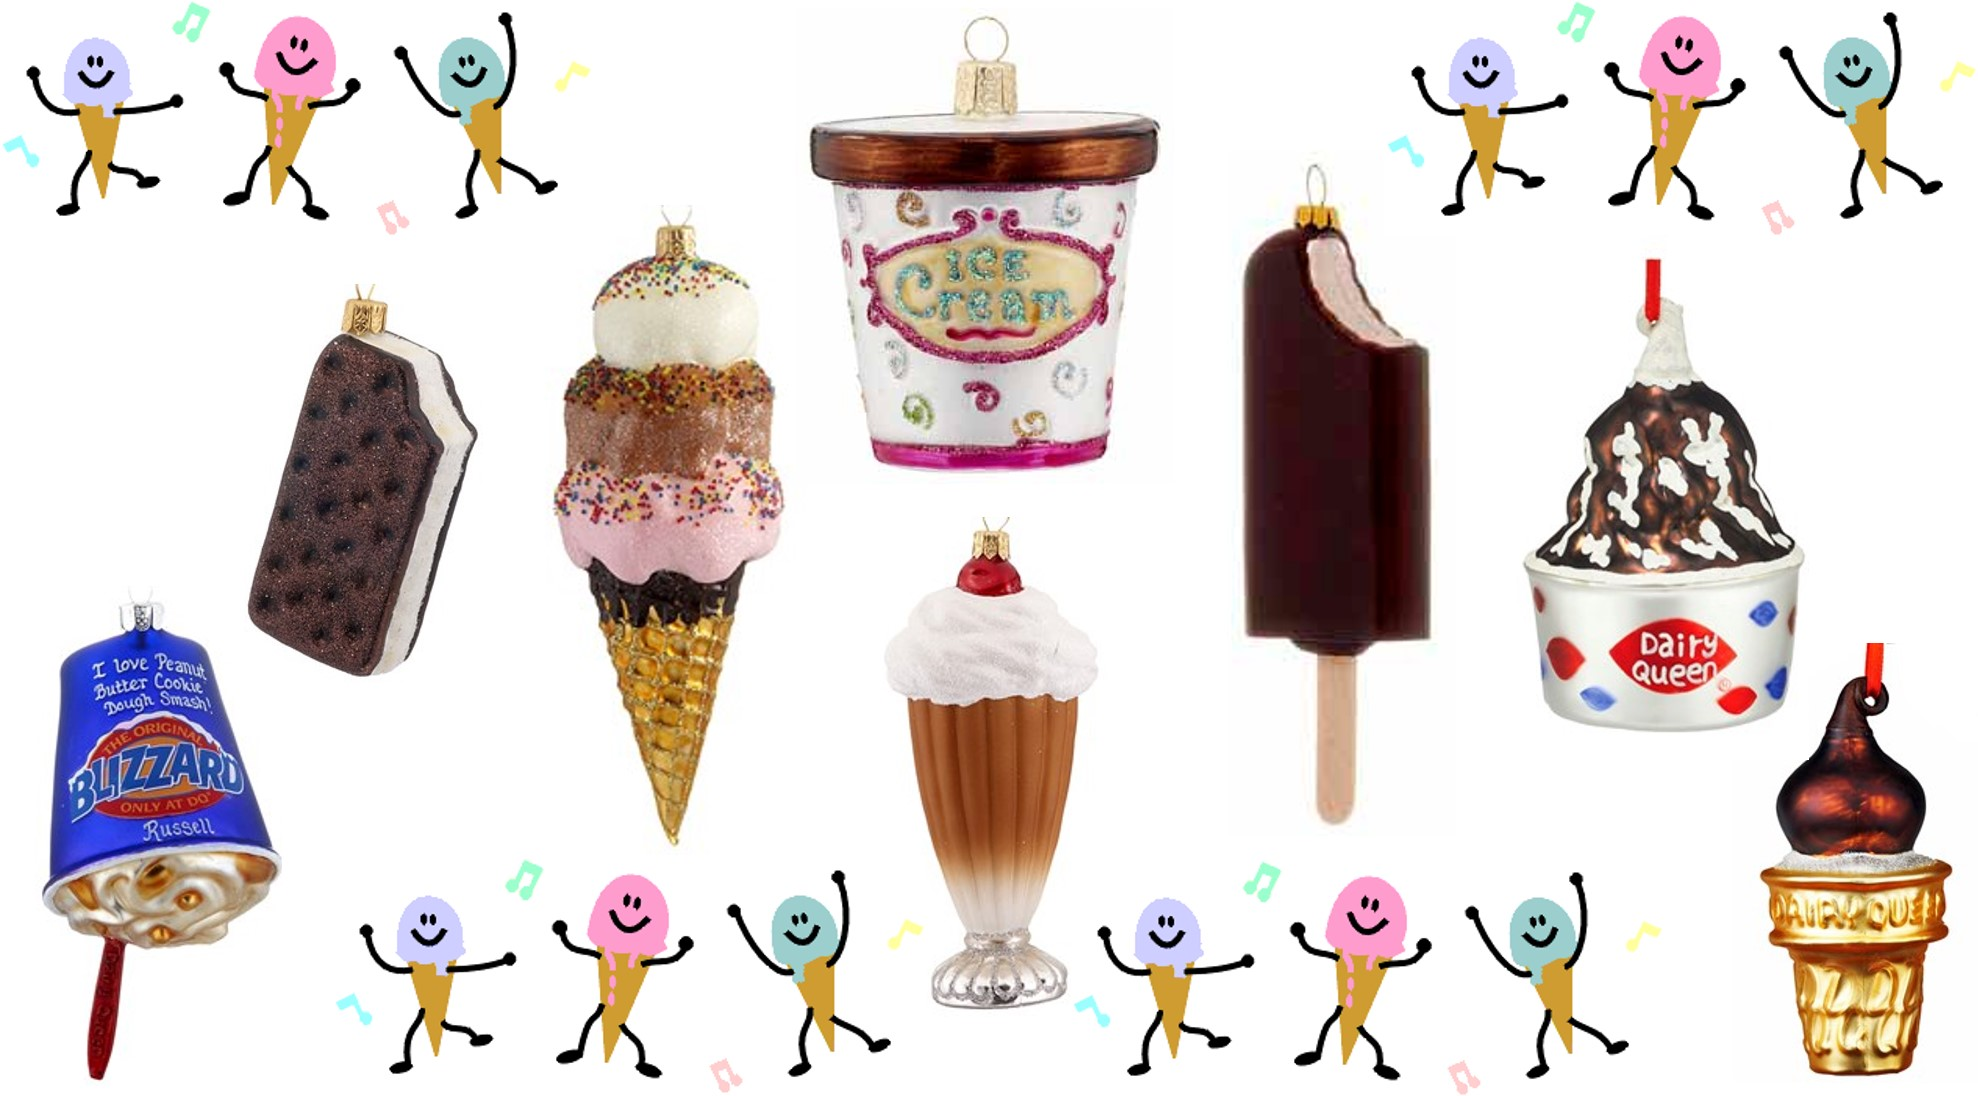 Ice Cream Ornaments available at OrnamentShop.com including a tub of ice cream, a chocolate ice cream bar, and a Blizzard from Dairy Queen. | OrnamentShop.com